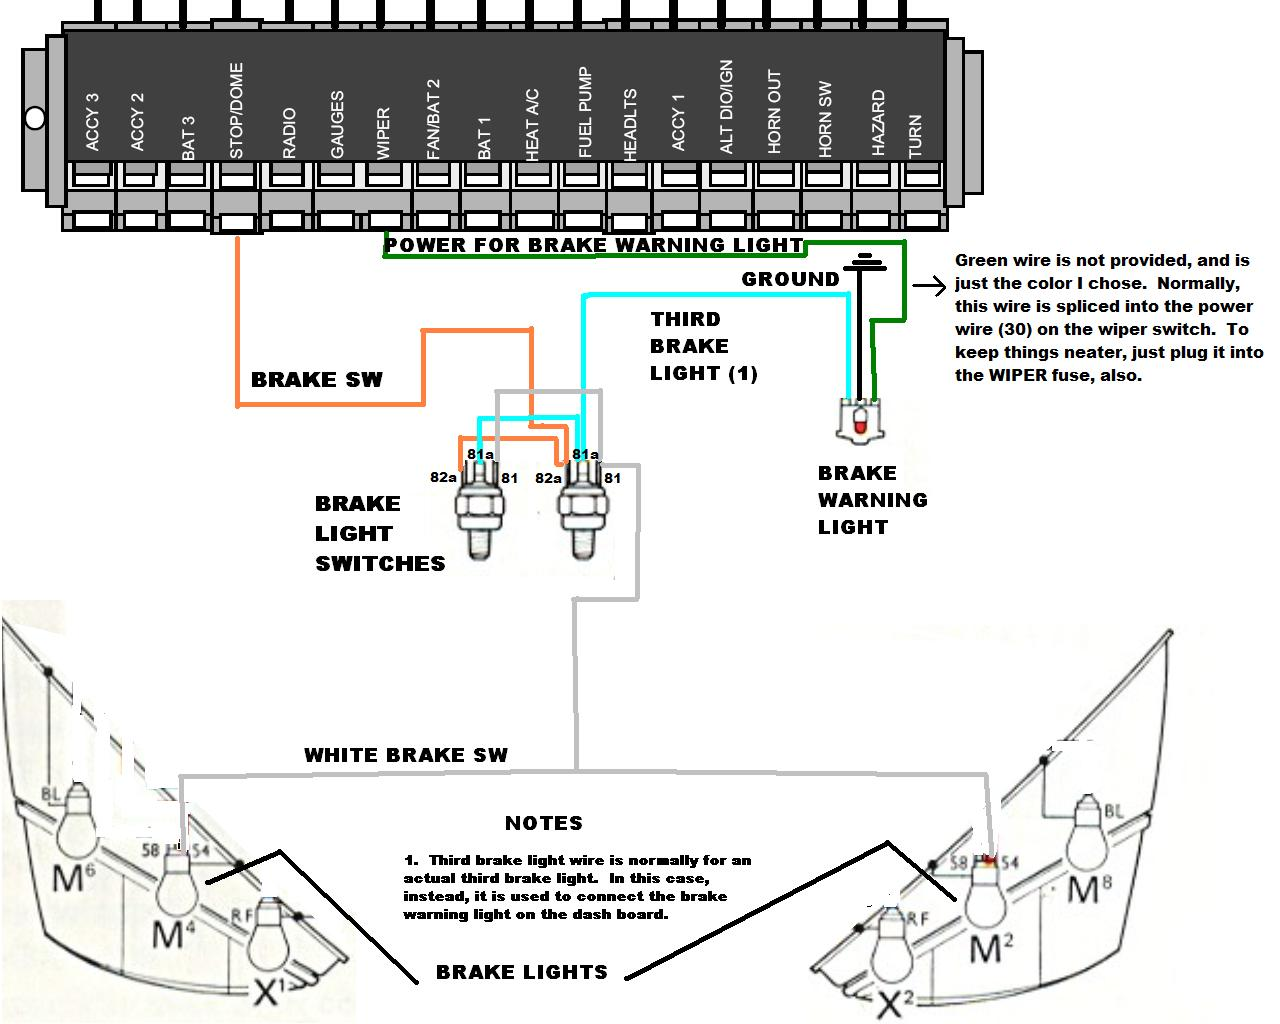 30 56 56a 56b S Relay Wiring Diagram : 36 Wiring Diagram